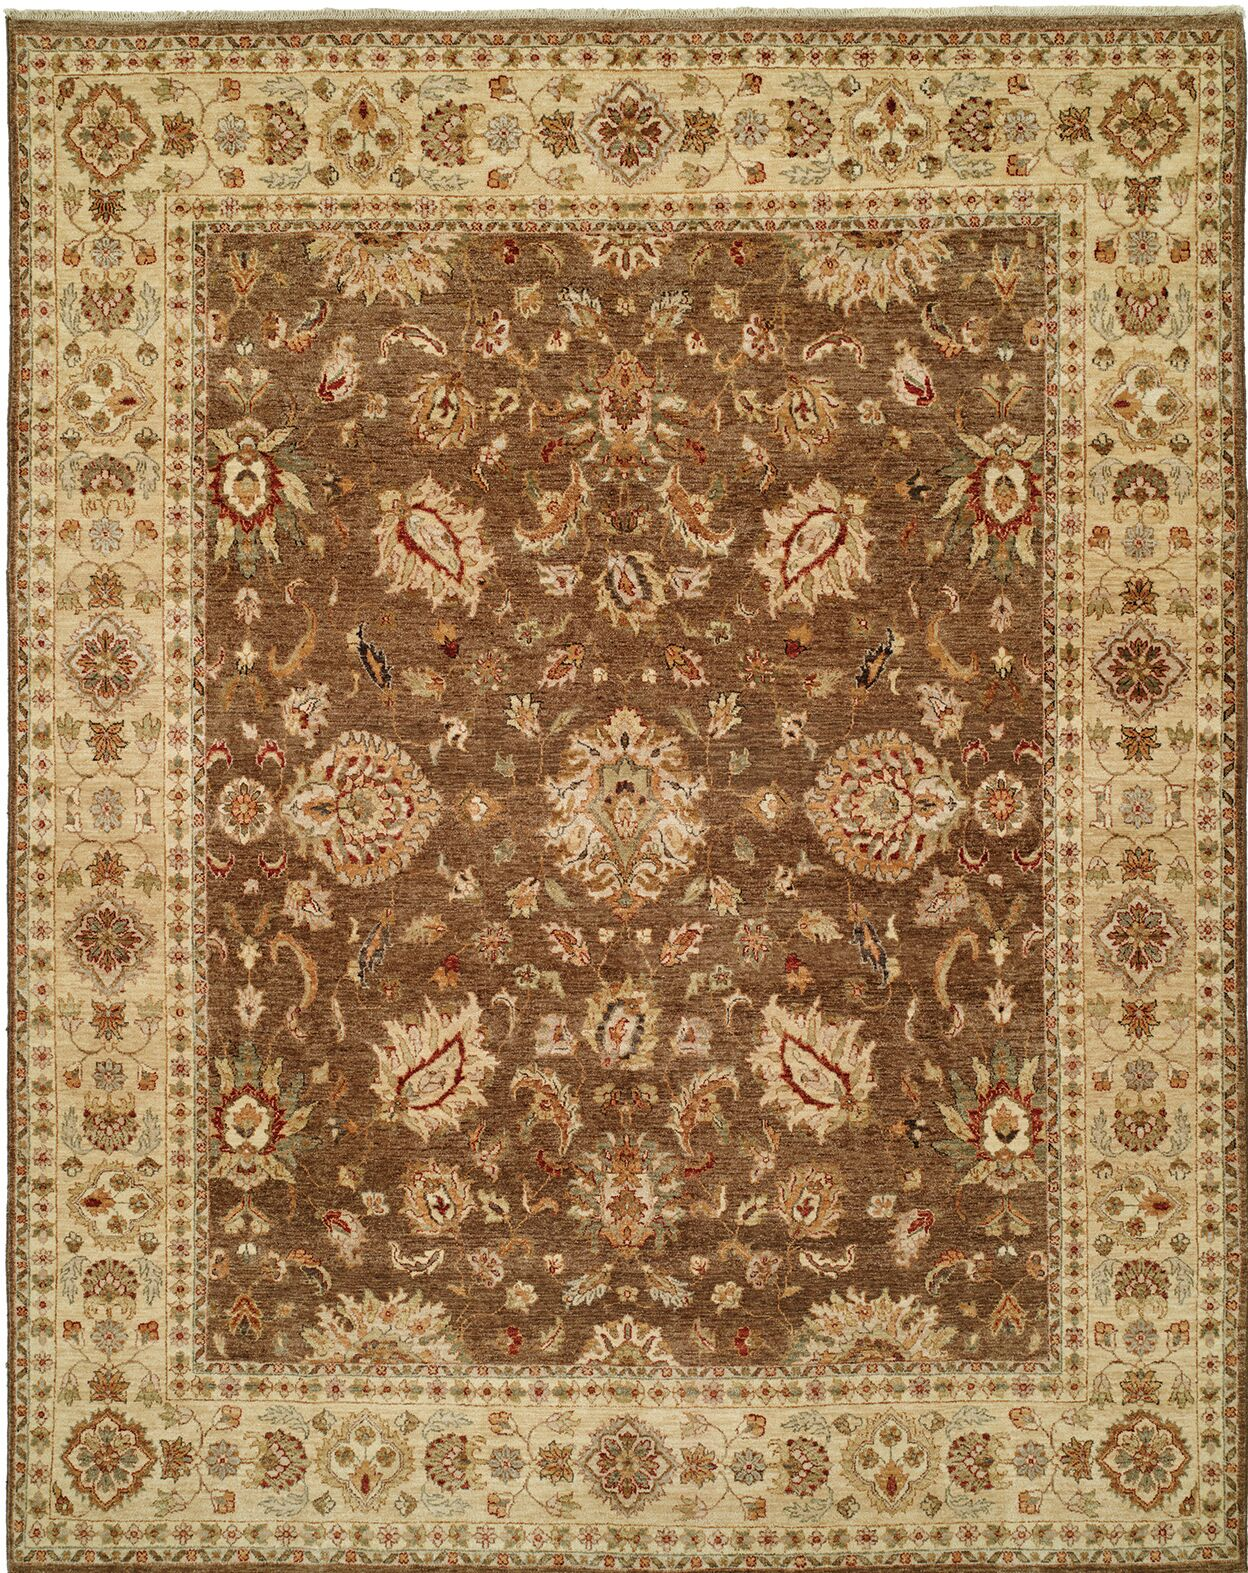 Royal Zeigler Hand-Knotted Brown/Beige Area Rug Rug Size: 8' x 10'